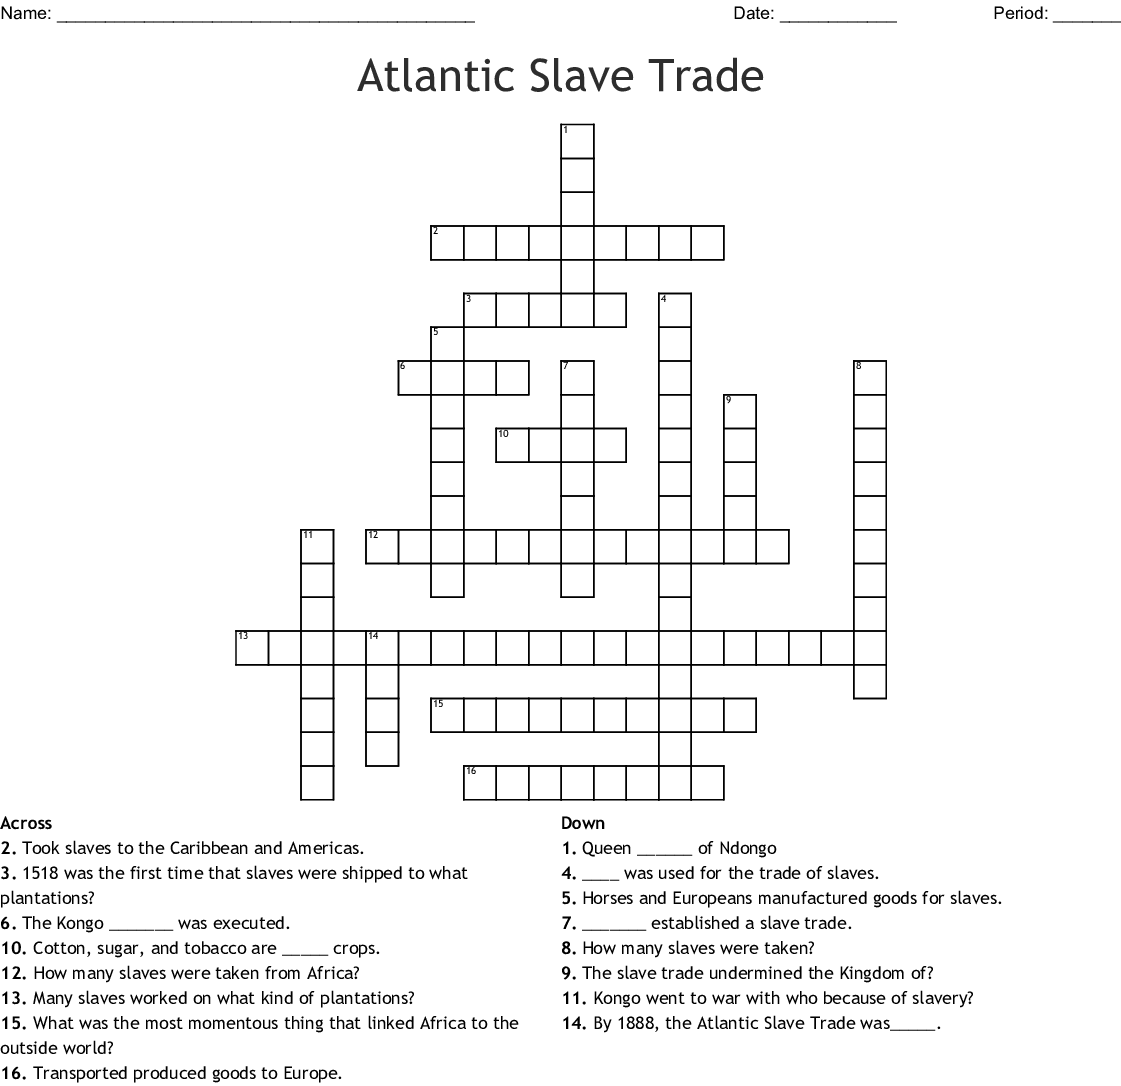 The Atlantic Slave Trade Worksheet Answers